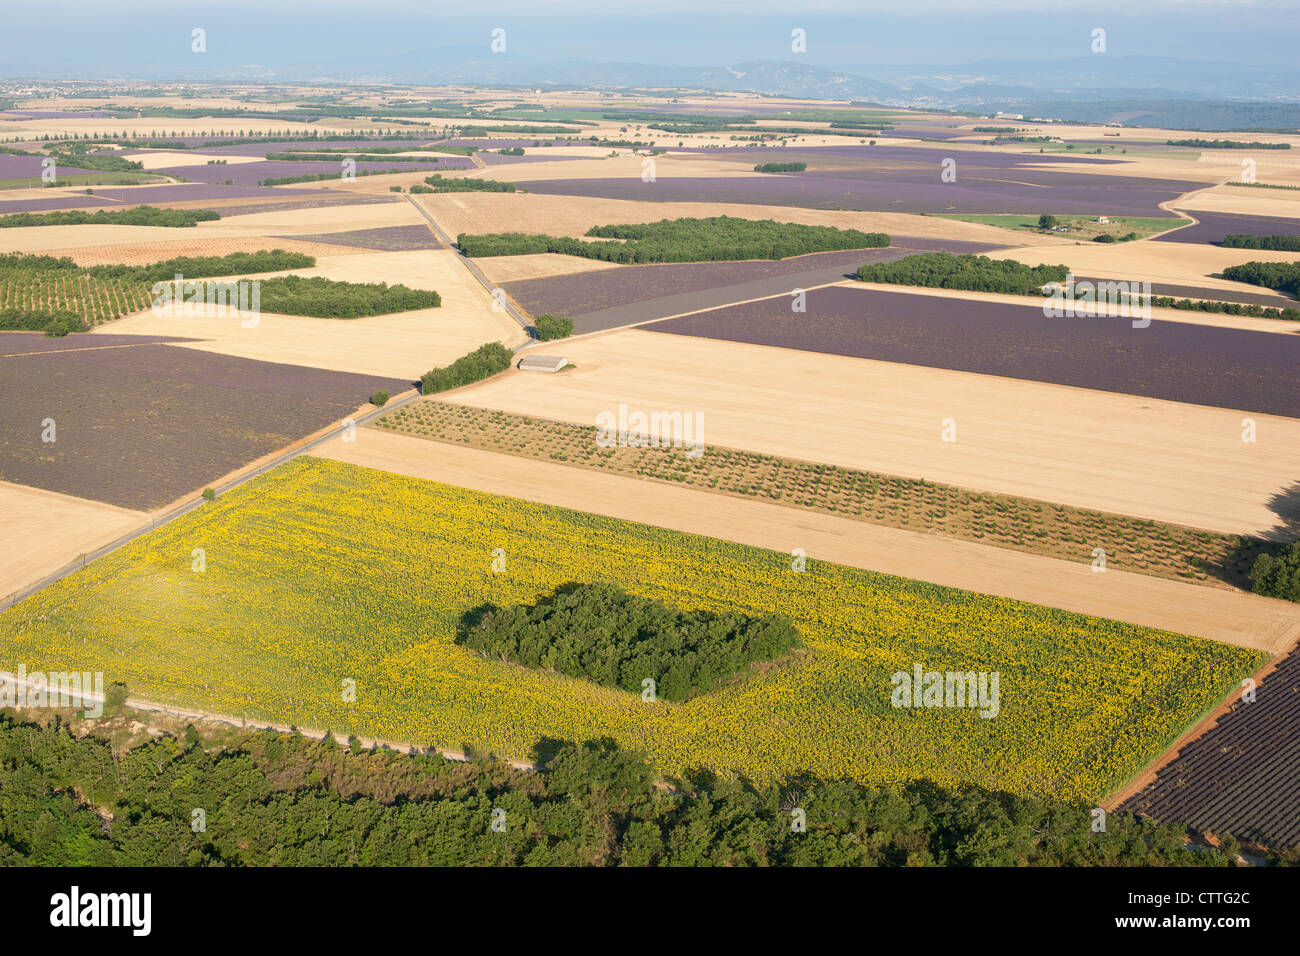 VALENSOLE PLATEAU (aerial view). Lavender, wheat and sunflower fields. Puimoisson, provence. France. Stock Photo